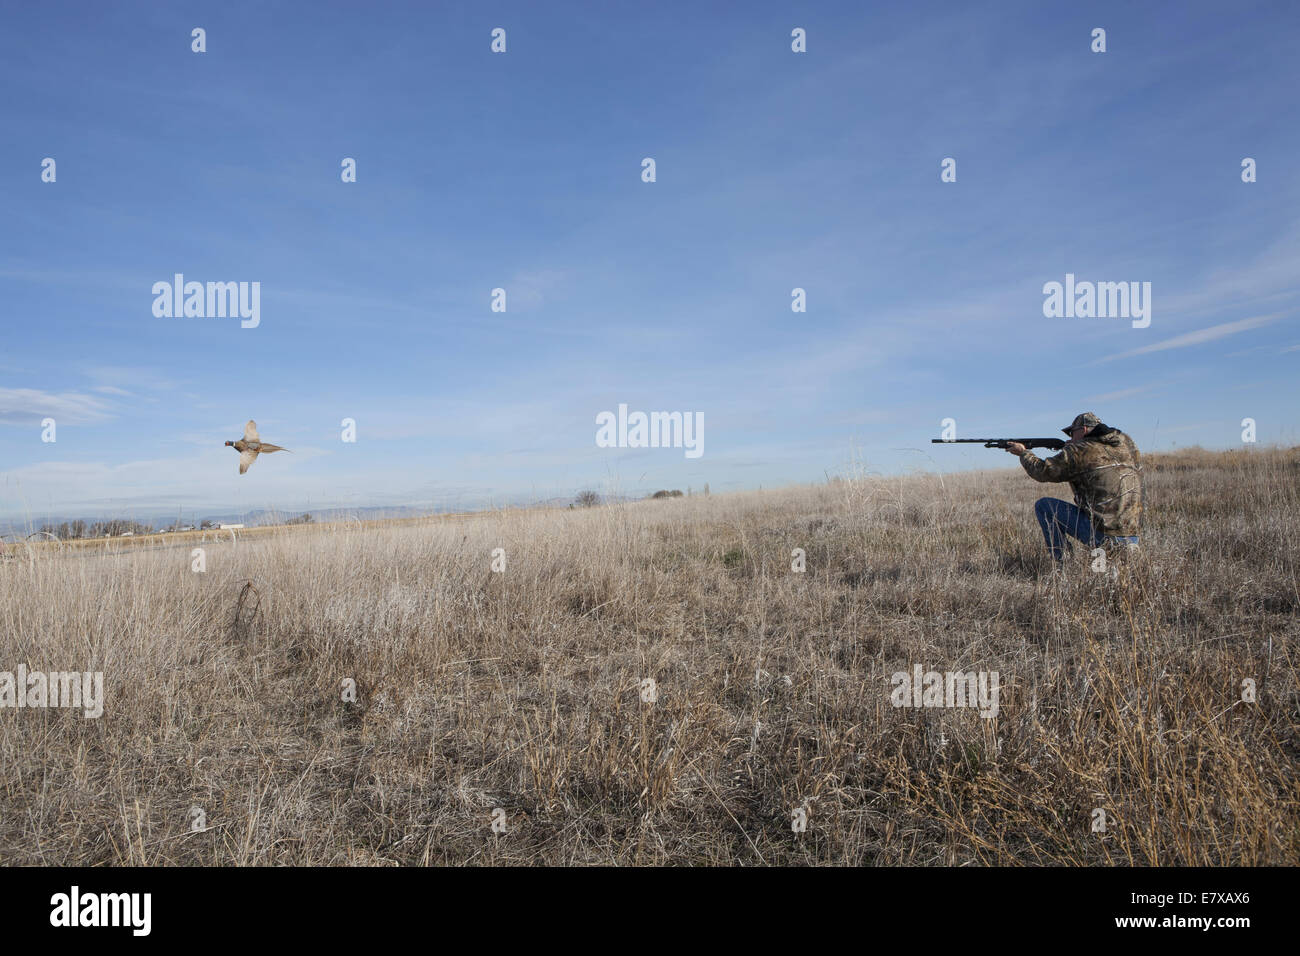 Man in field hunting ring-necked pheasant with shot gun - Stock Image